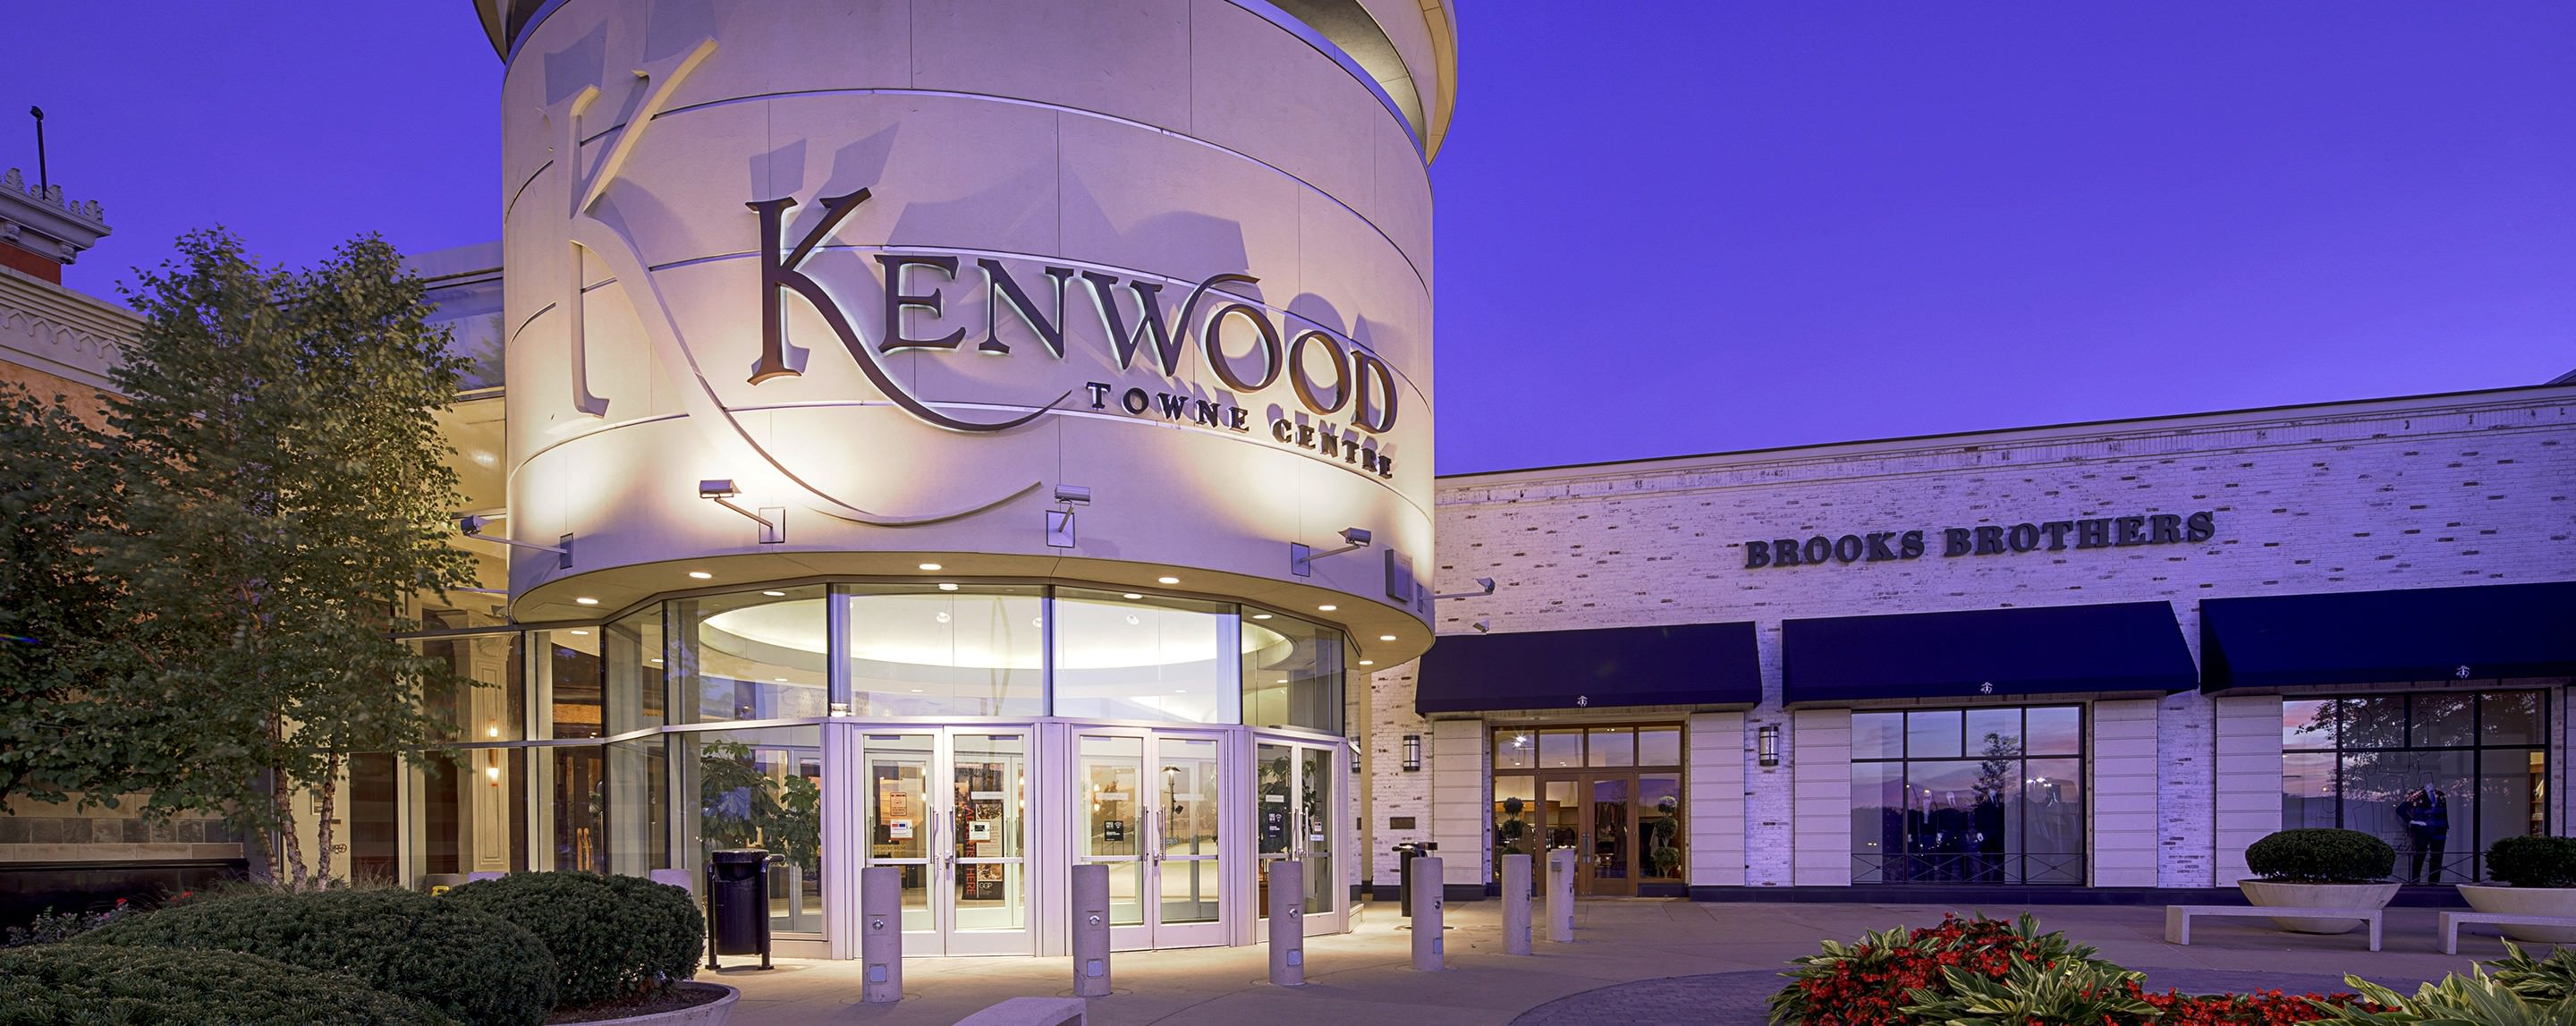 Homes for Sale in Kenwood, Cincinnati, OH have a median listing price of $, and a price per square foot of $ There are 50 active homes for sale in the Kenwood neighborhood, which spend.